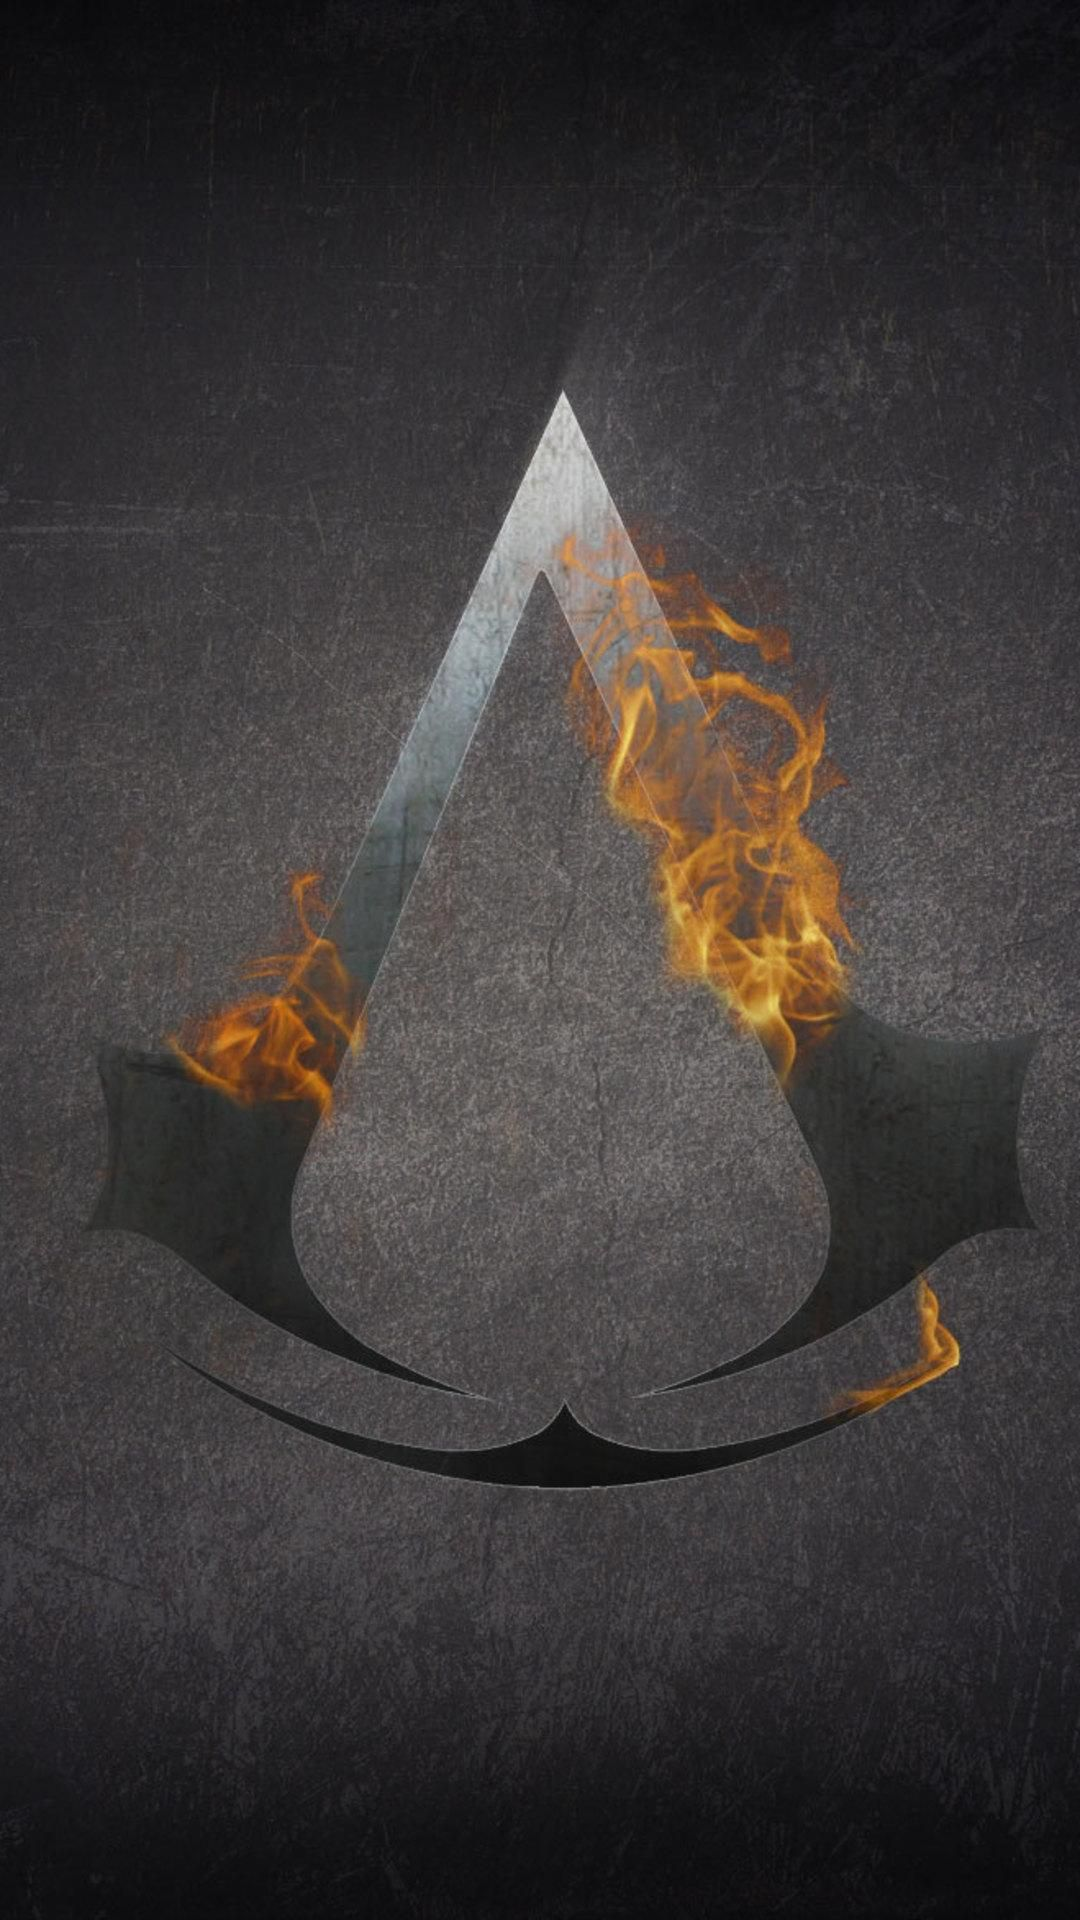 Pin by Divyen Gohil on Gaming Assassin's creed wallpaper